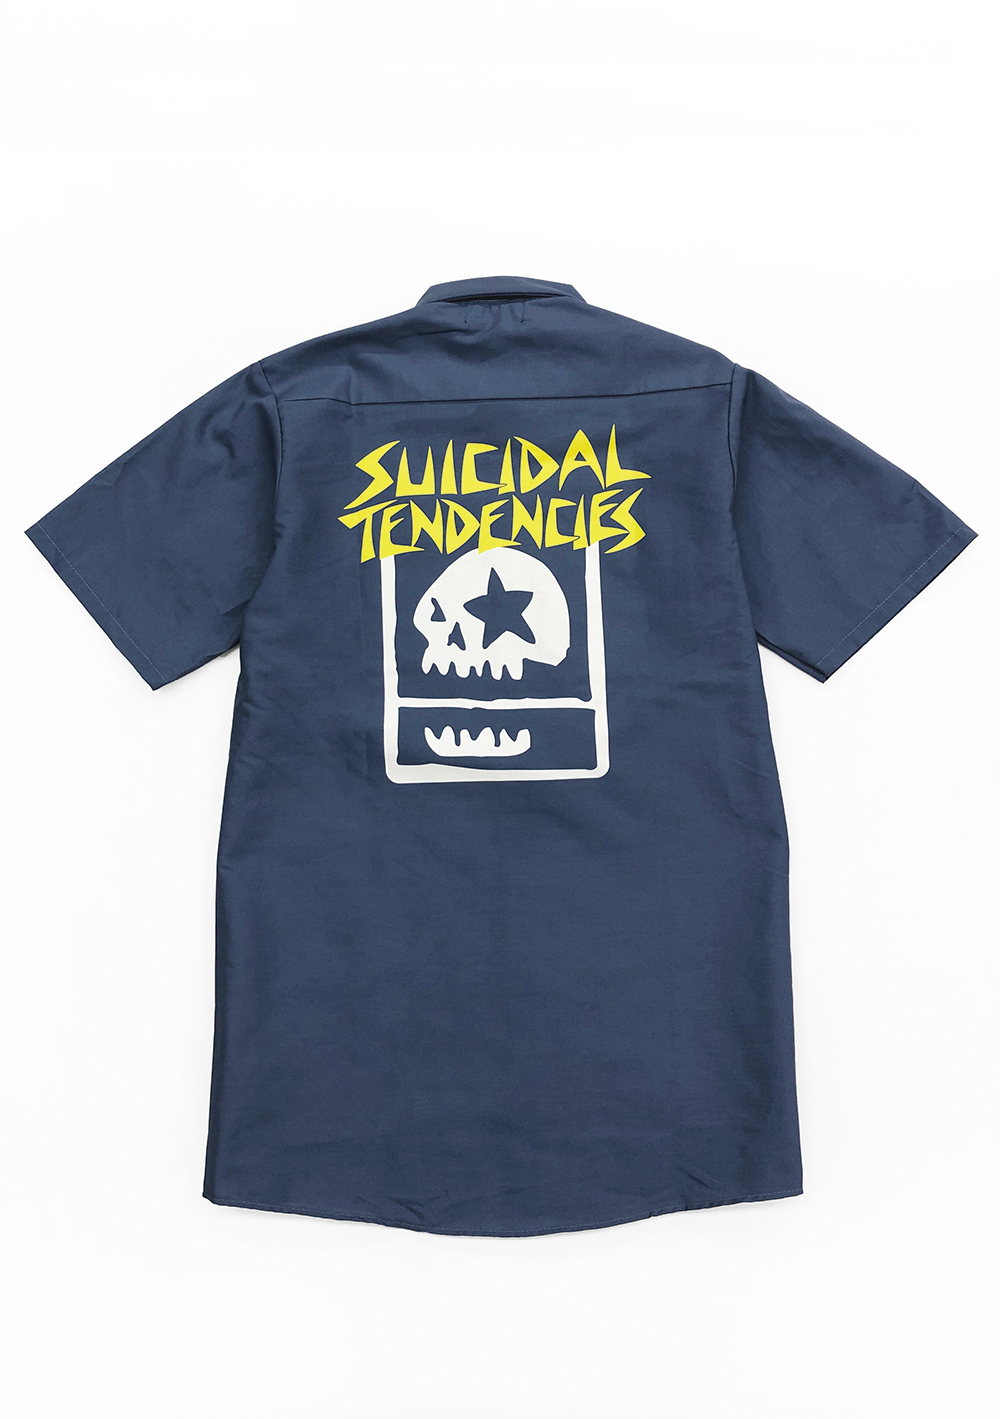 "[SOLD OUT] SUICIDAL TENDENCIES x MxMxM ""MAGICAL TENDENCIES"" WORK SHIRT"